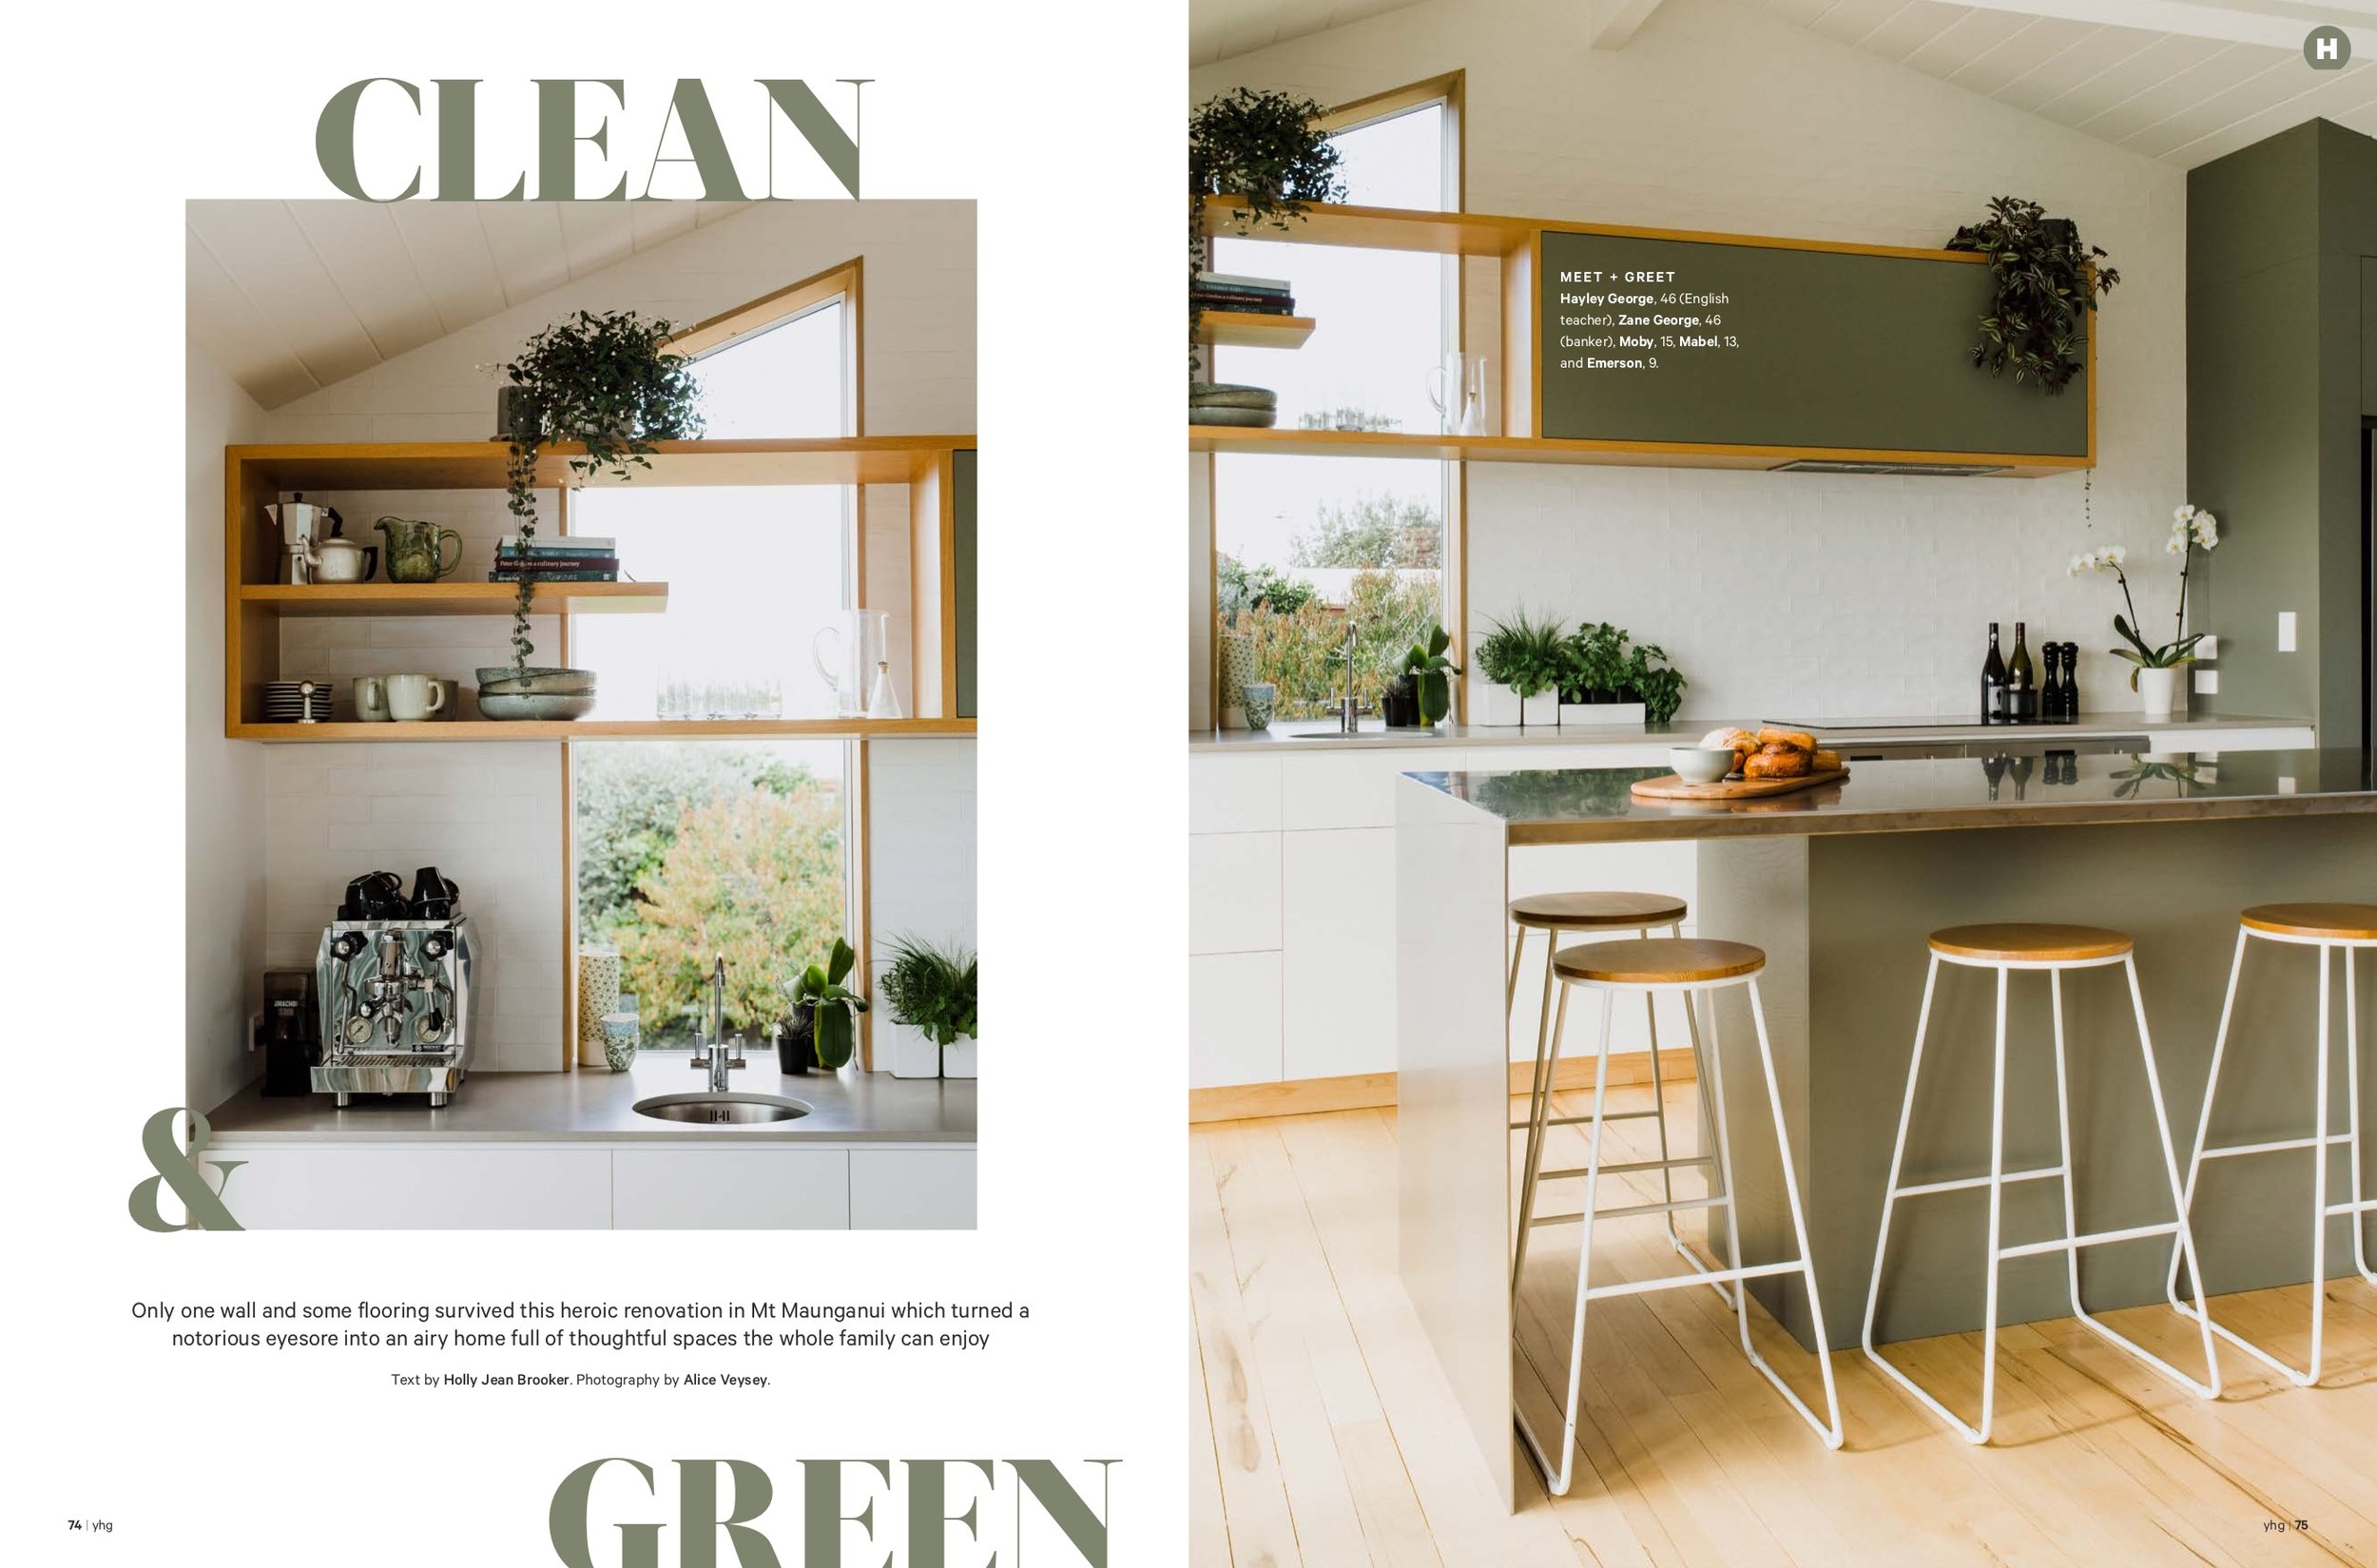 Your Home & Garden 2019 - The George family bought their home at the Mount after one 15 minute visit! Only one wall and some flooring survived this heroic renovation in Mt Maunganui, which turned a notorious eyesore into an airy home full of thoughtful spaces the whole family can enjoy.Words by Holly Jean BrookerPhotography by Alice Veysey